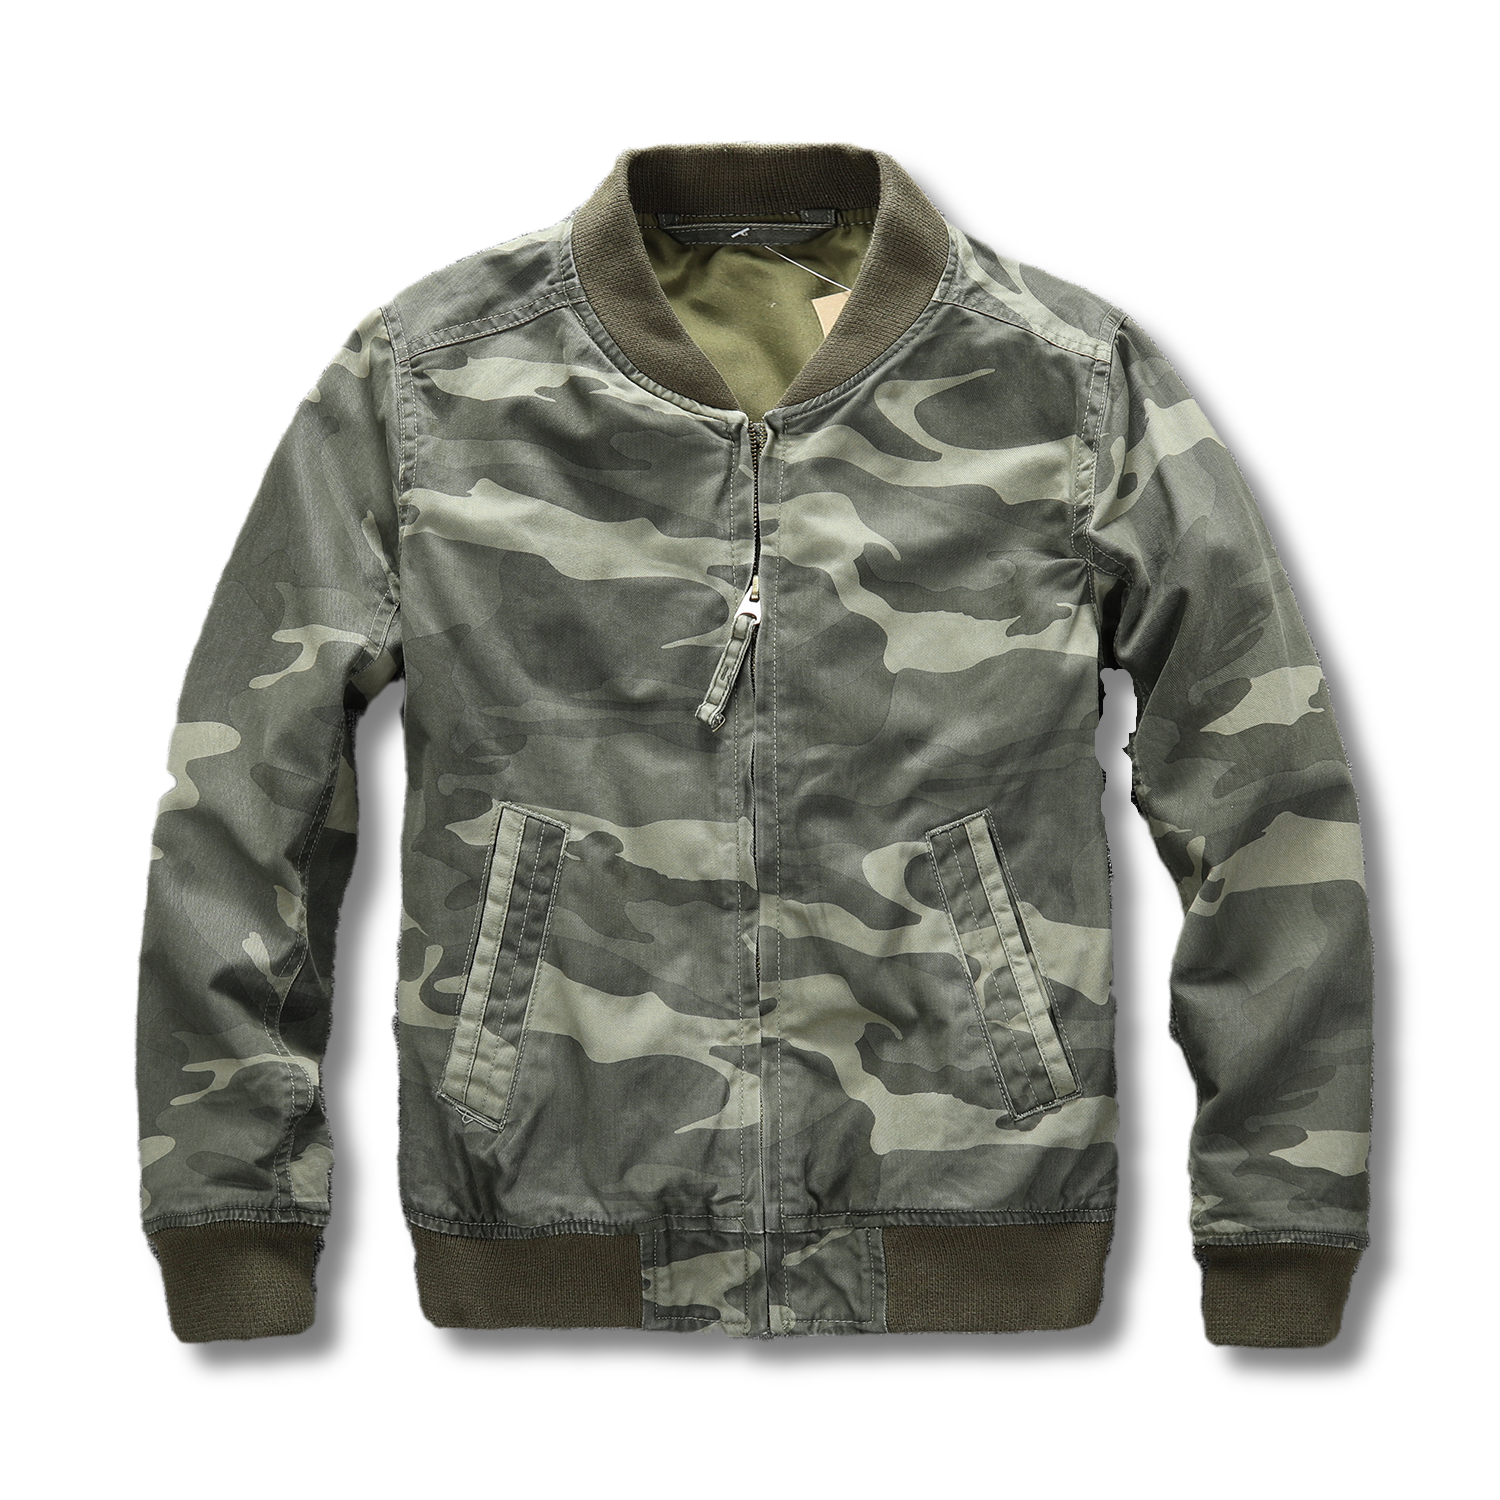 <strong>Military</strong> <strong>Style</strong> Warm Field Tactical <strong>Jacket</strong> Men SWAT Combat Army <strong>Jackets</strong> New 2020 Spring Autumn Casual Bomber Pilot Coats 2XL